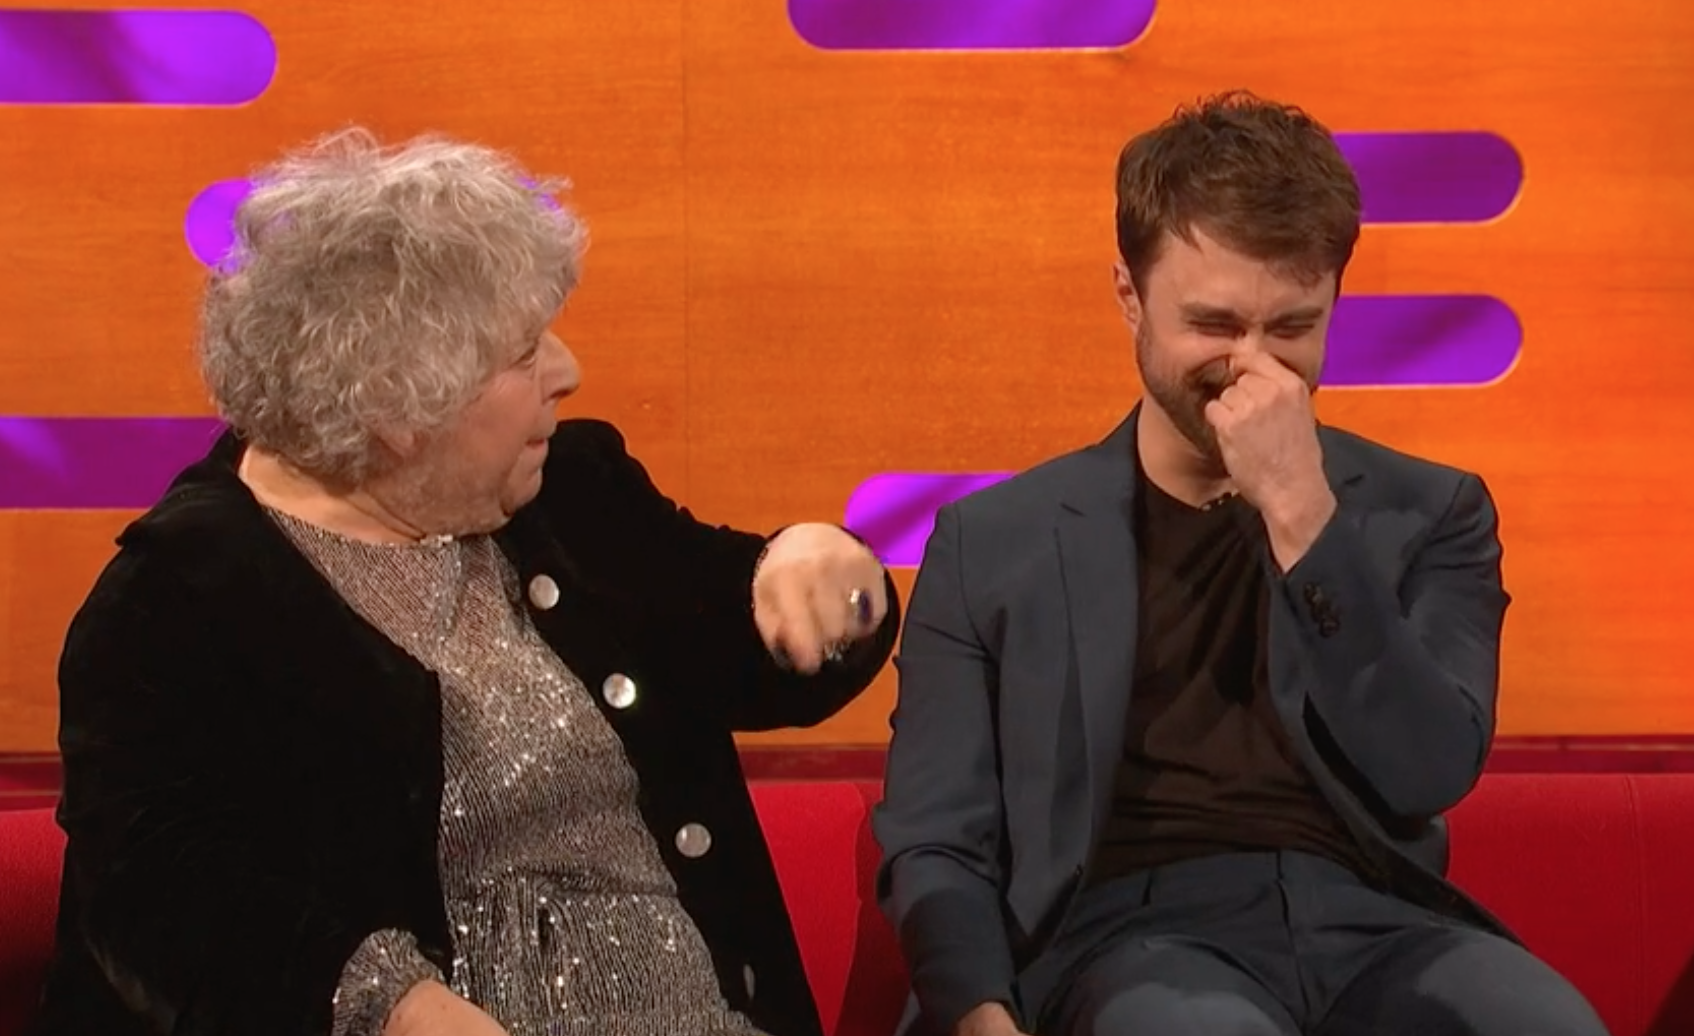 Miriam Margolyes has Daniel Radcliffe in stitches on The Graham Norton Show over 'foreskin' comments